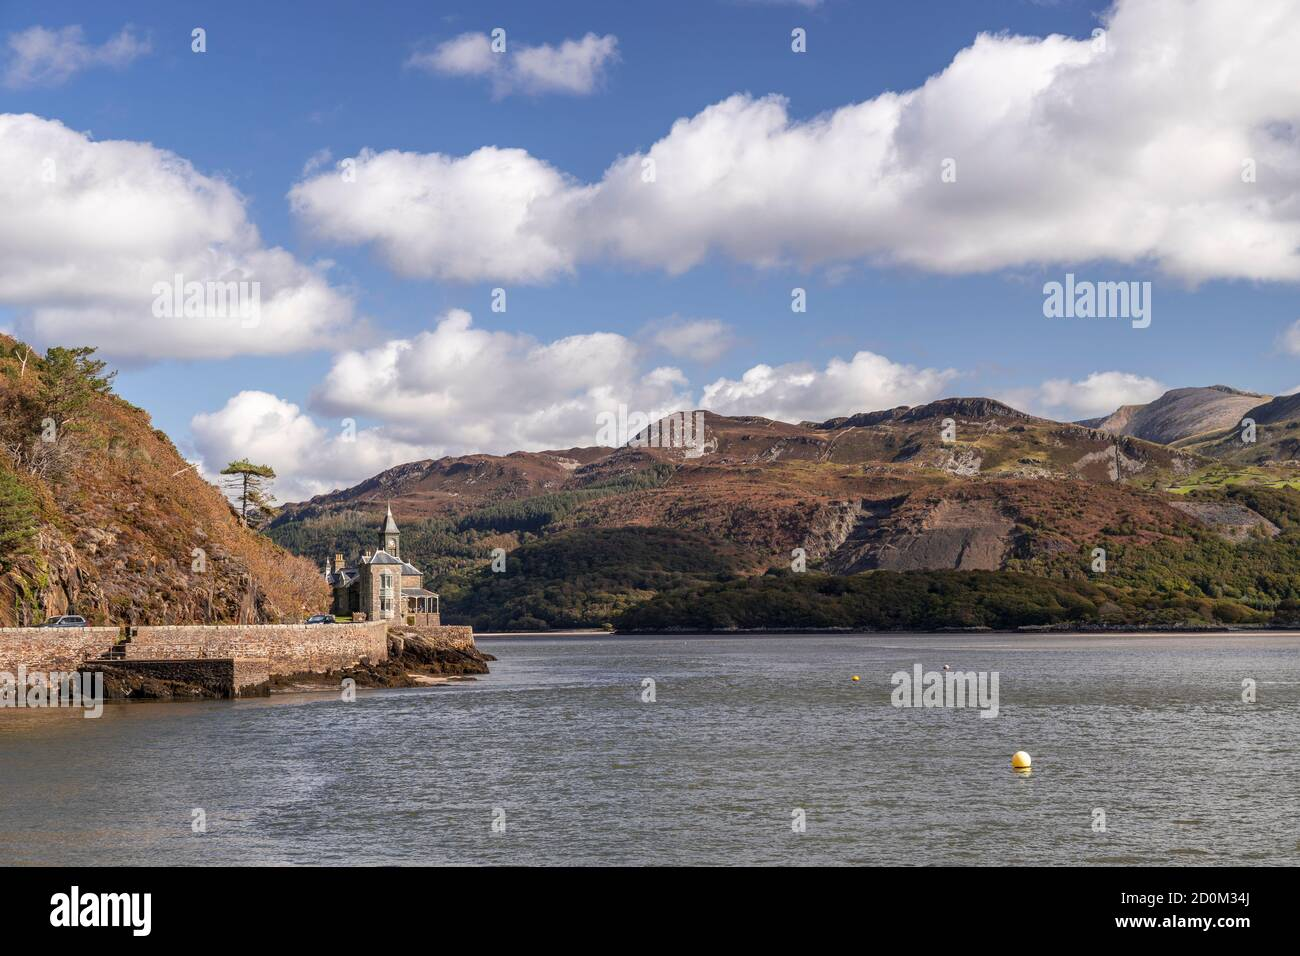 View up the Mawddach estuary from Barmouth on the welsh coast Stock Photo